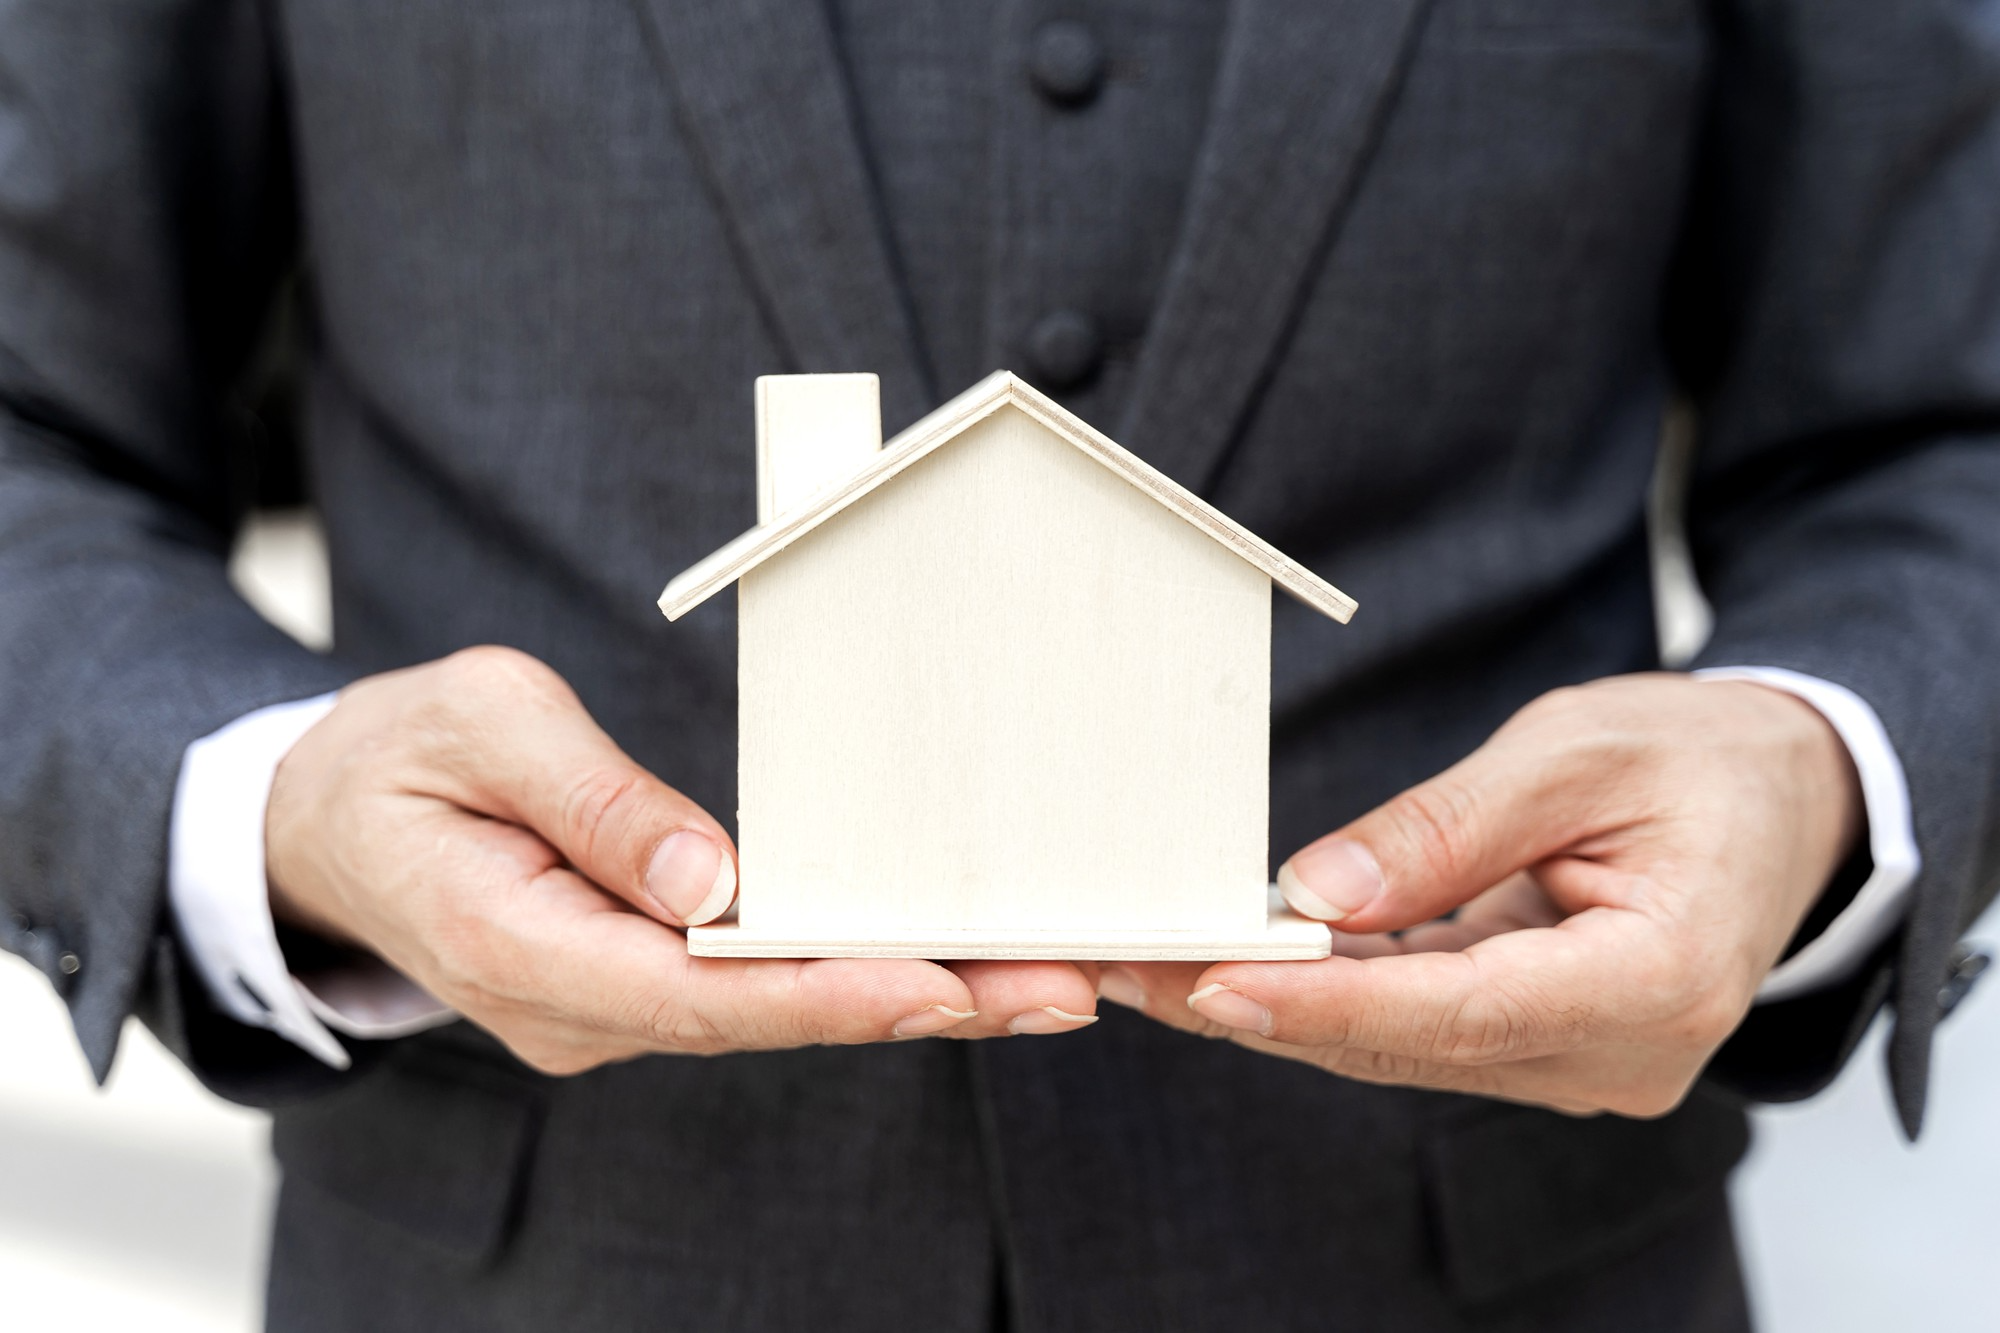 man holding scale wooden model of a house